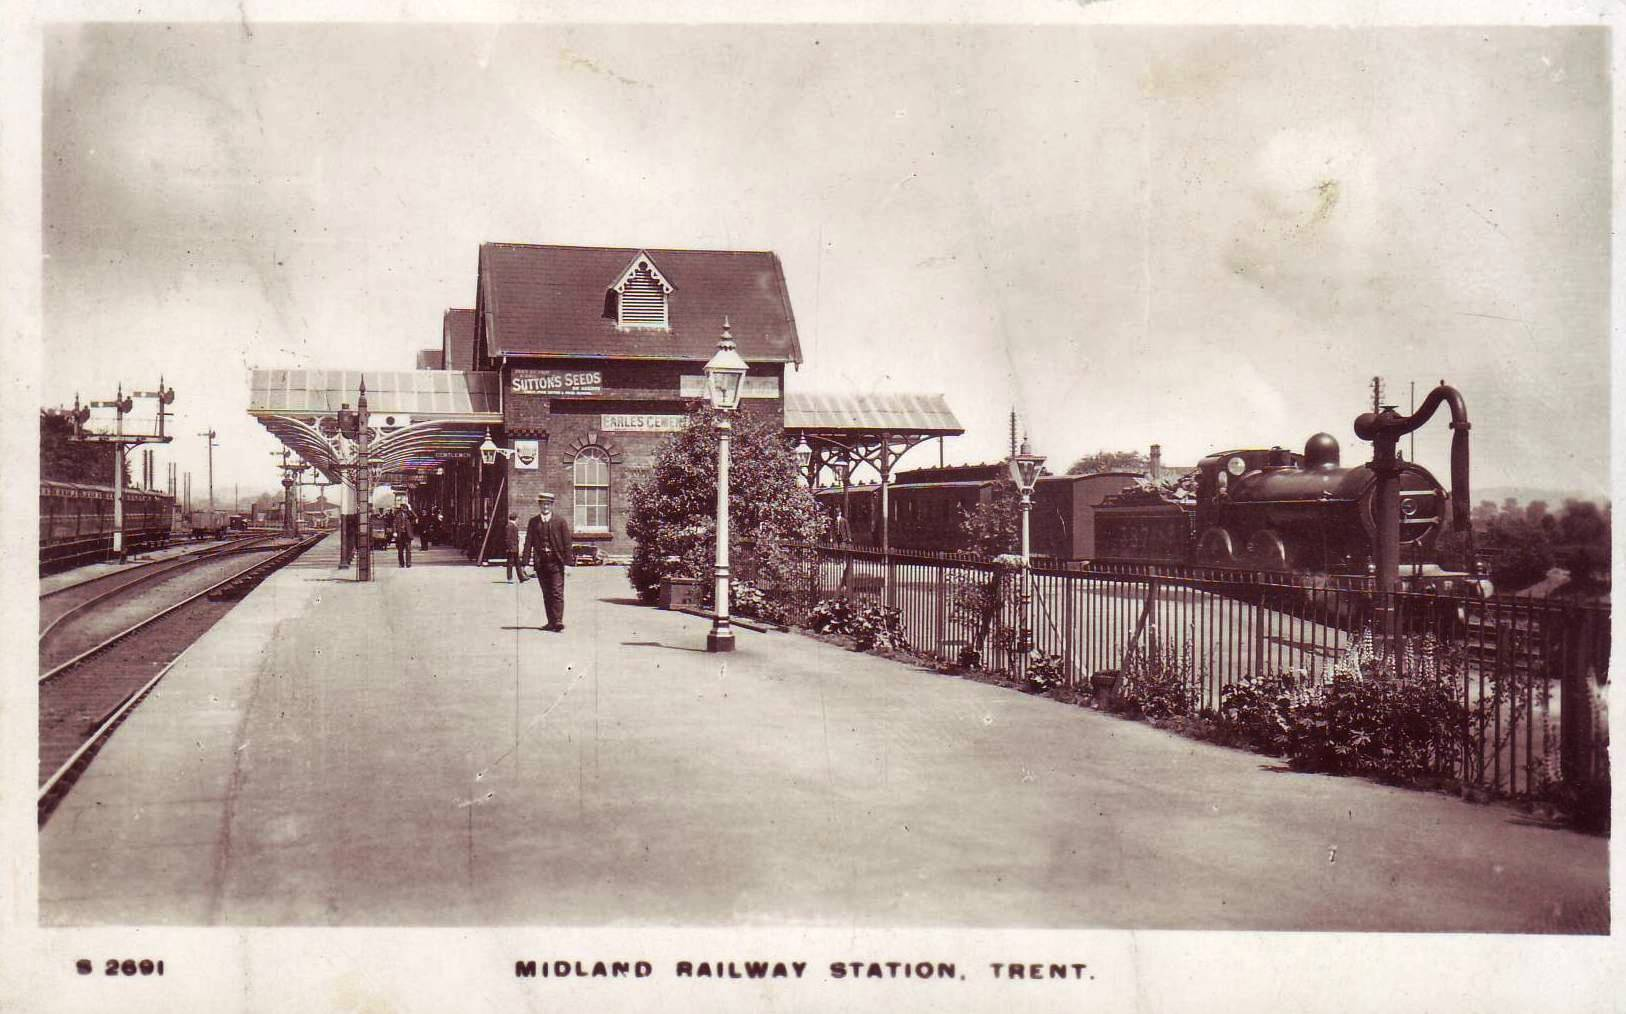 Burton to Derby Line. 2 Mickleover Etwall Railway Station Photo Egginton